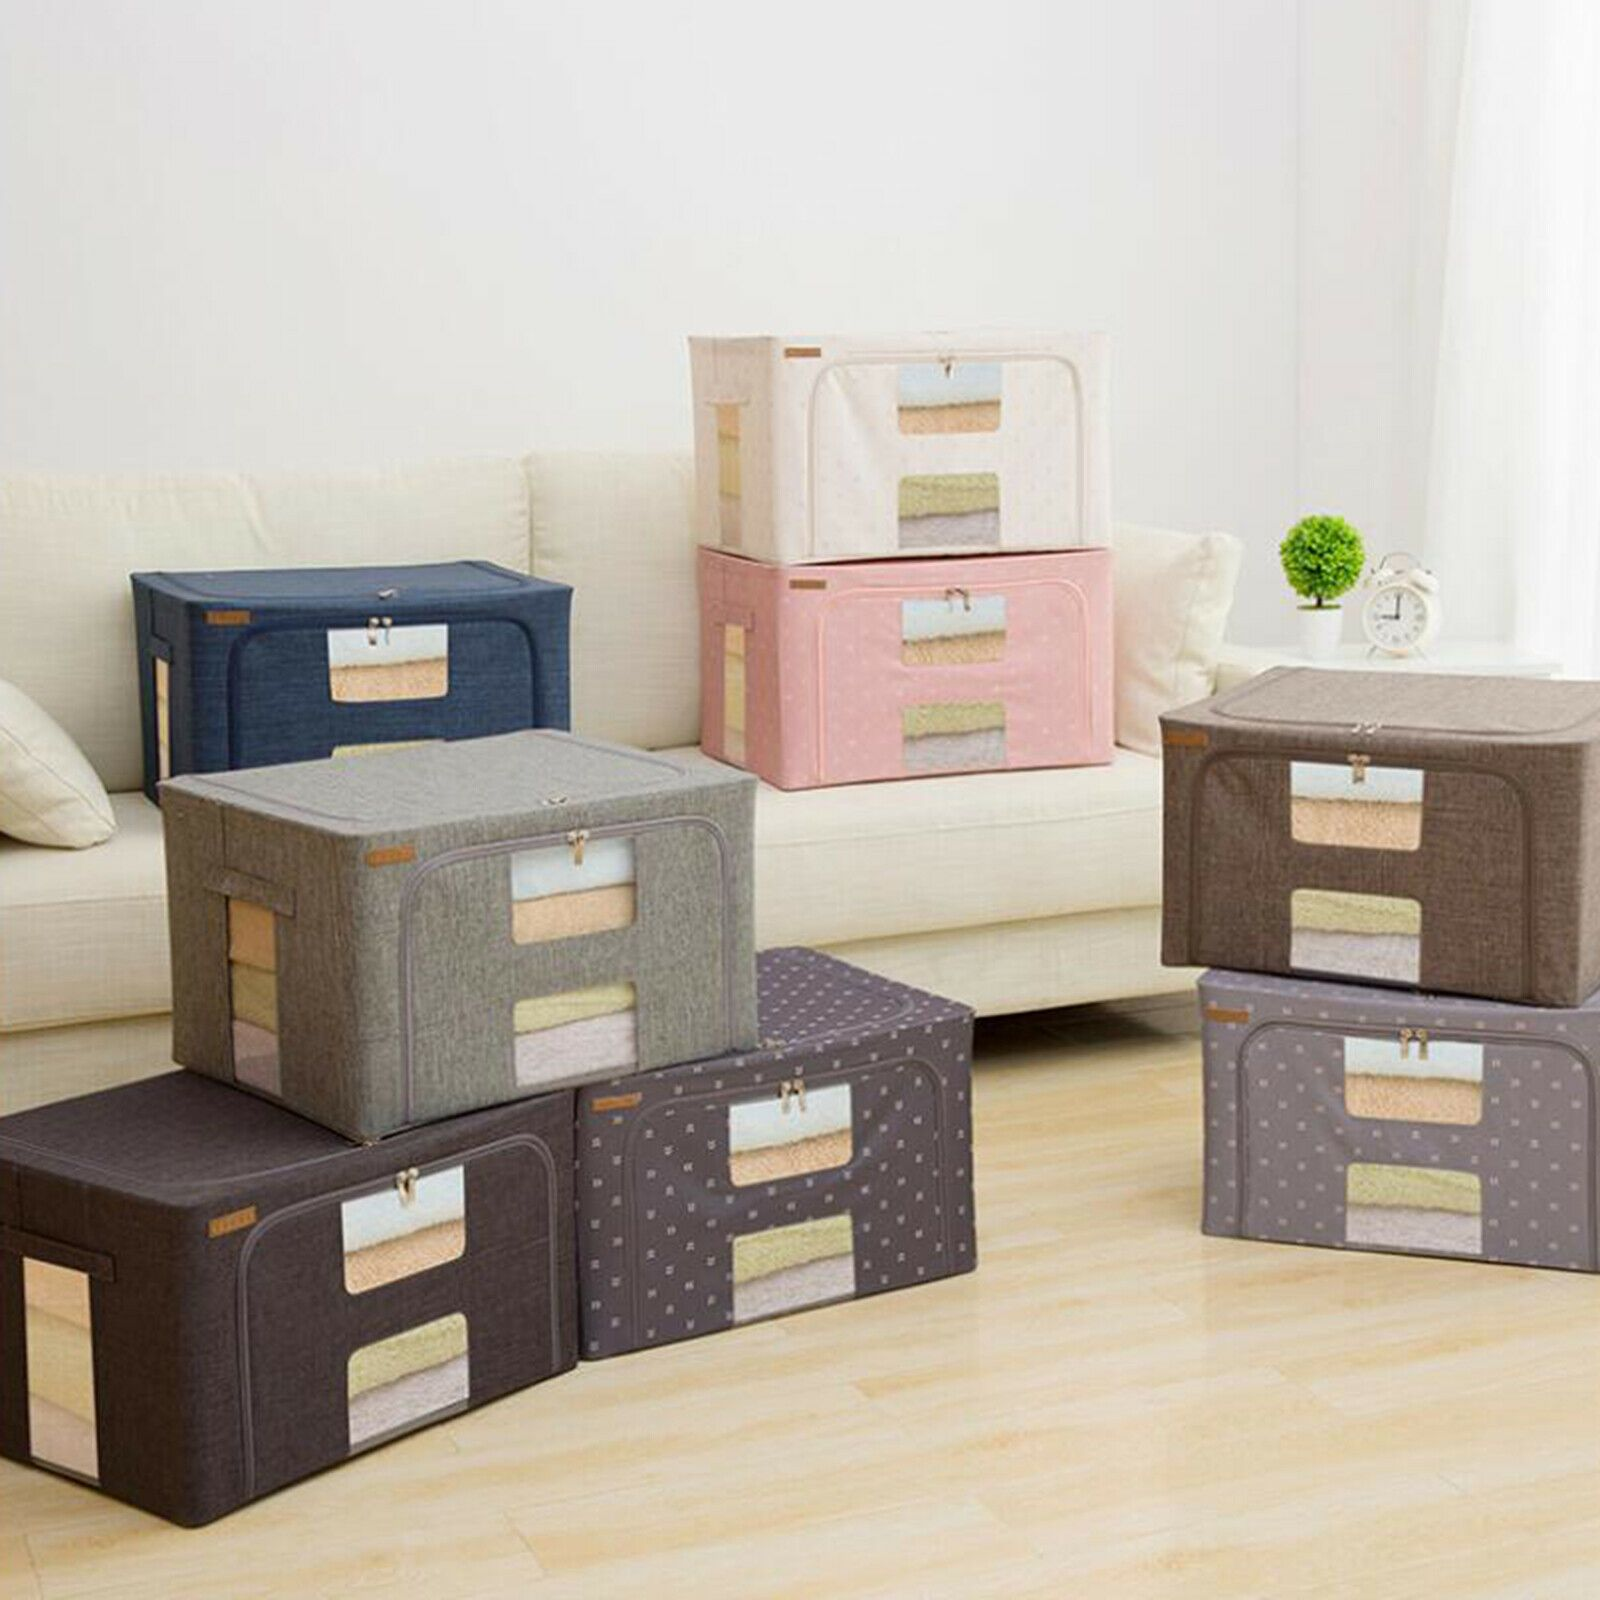 Foldable Storage Bag Clothes Blankets Quilt Closet Sweater Container Box Pouches Storage Containers With Drawers Stackable Storage Bins Decorative Storage Bins